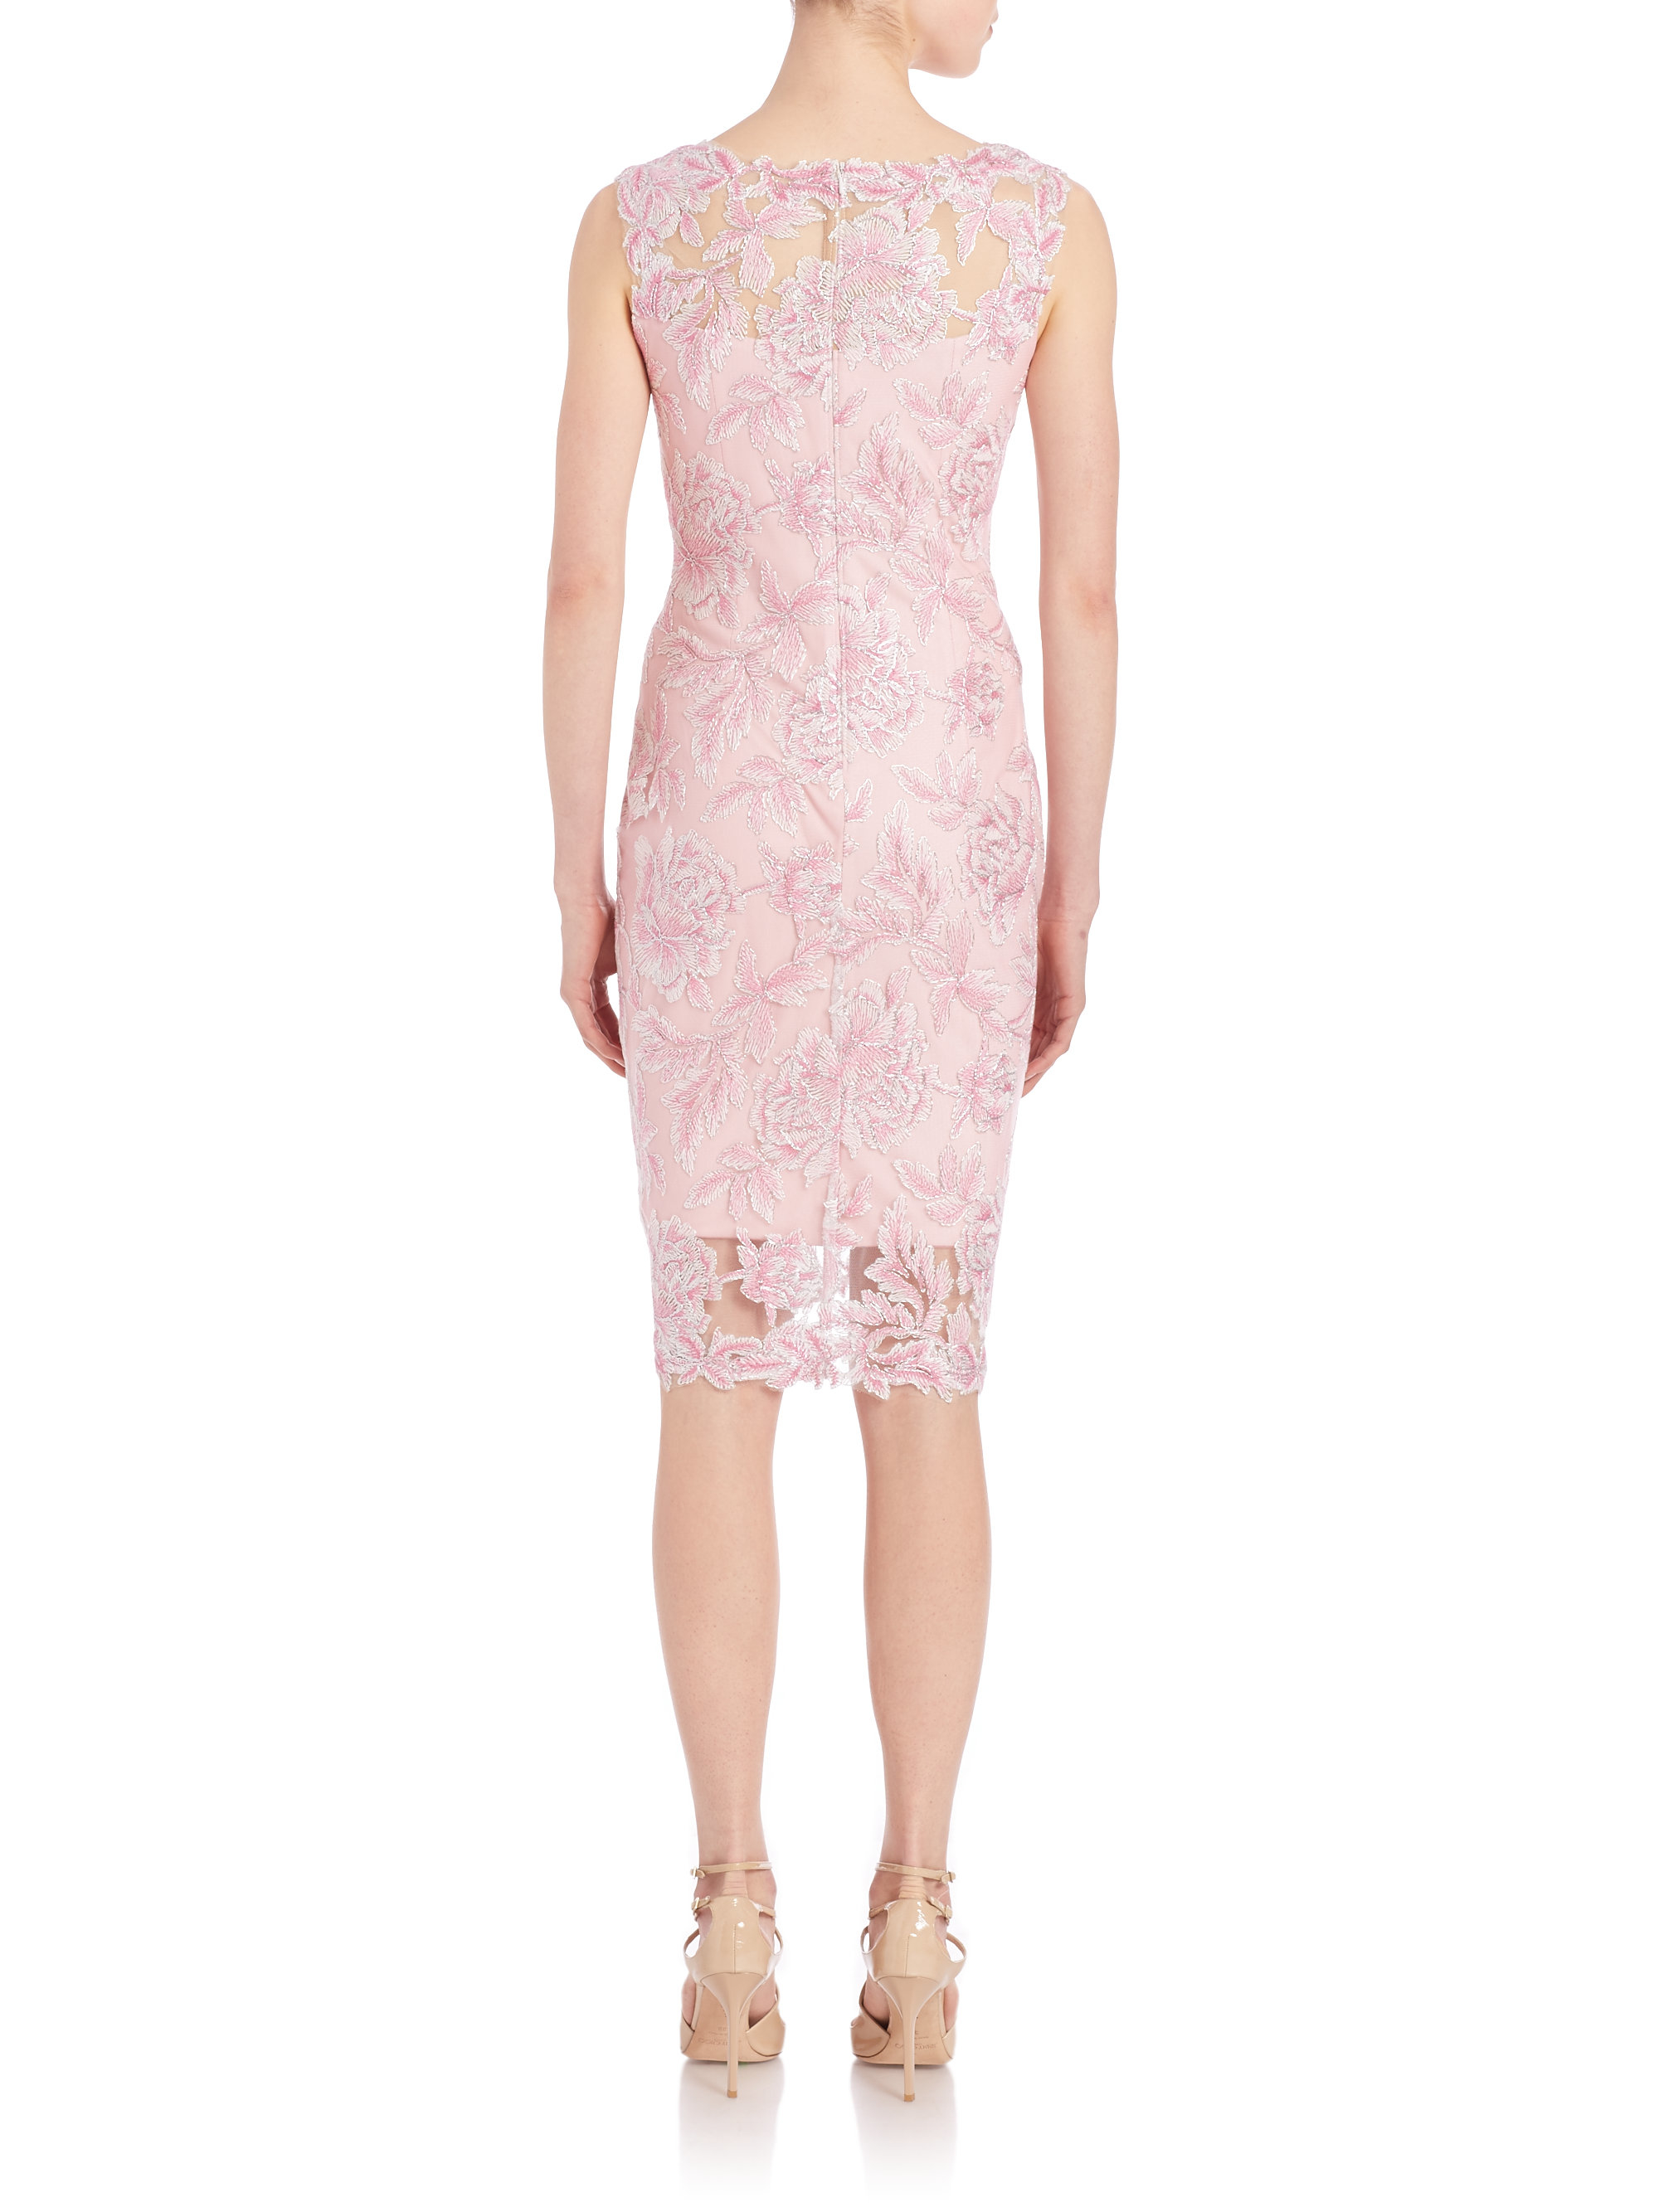 Short Pink Lace Sheath Dress